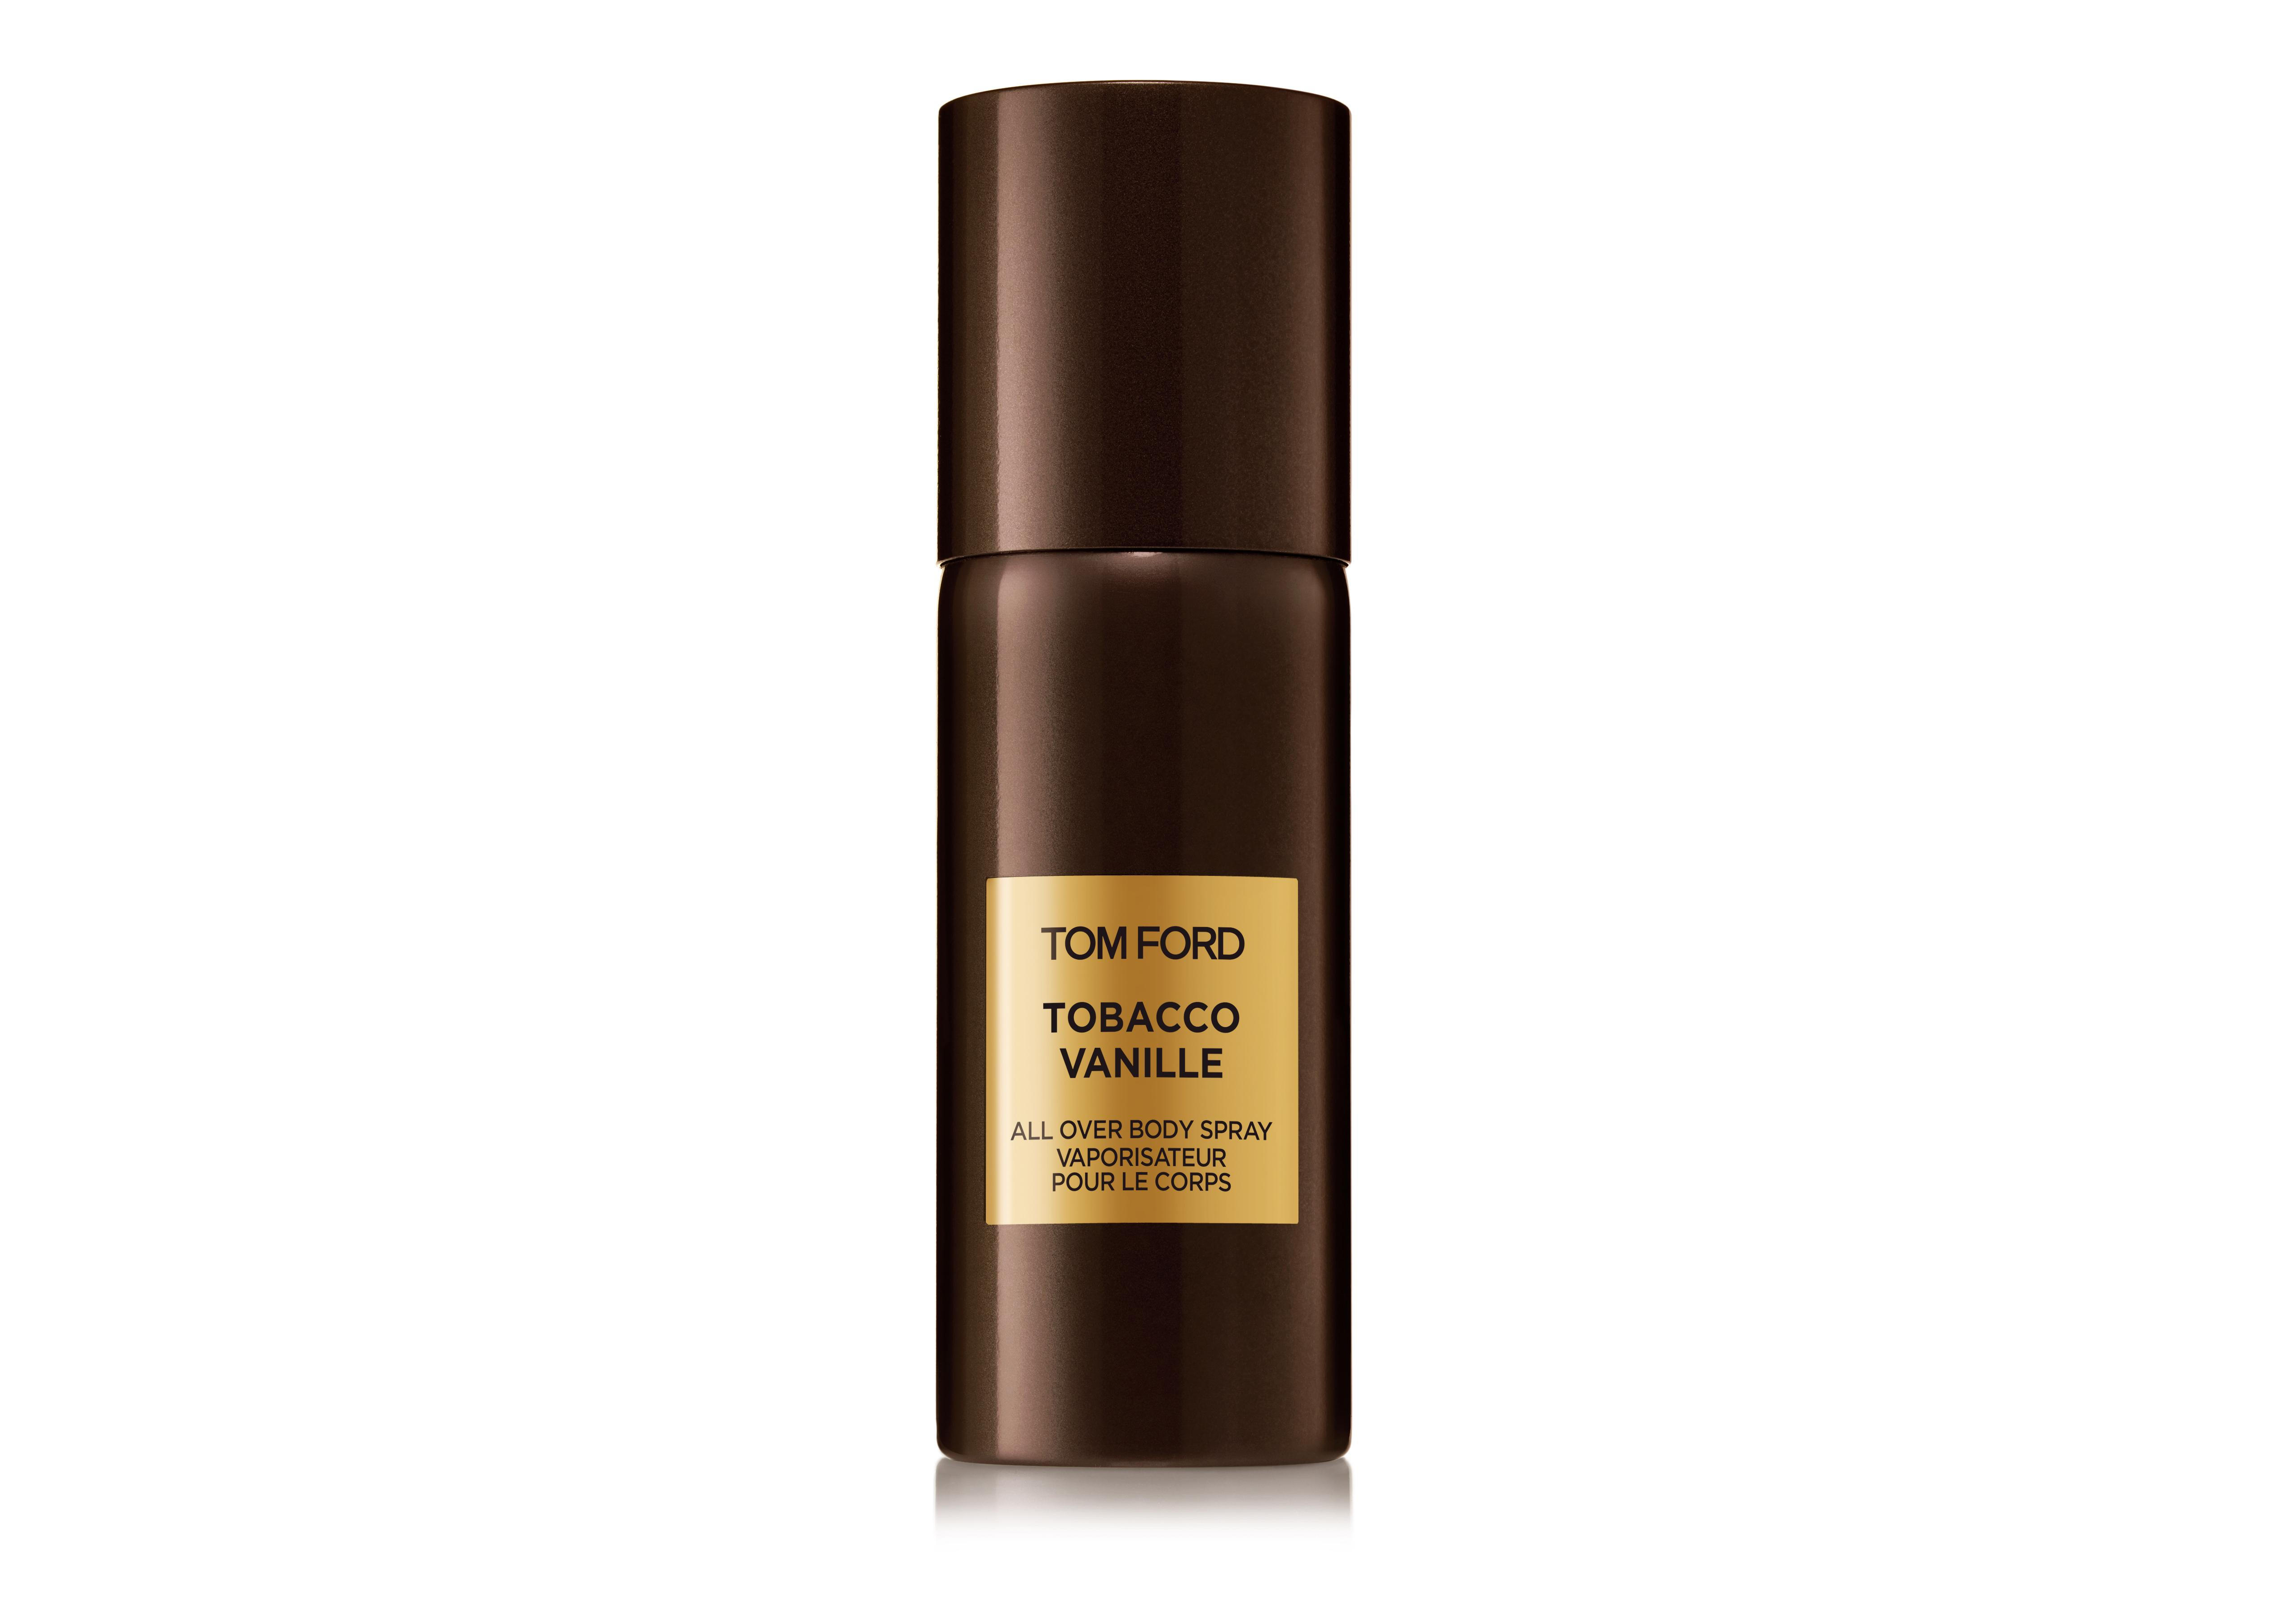 TOBACCO VANILLE ALL OVER BODY SPRAY A thumbnail